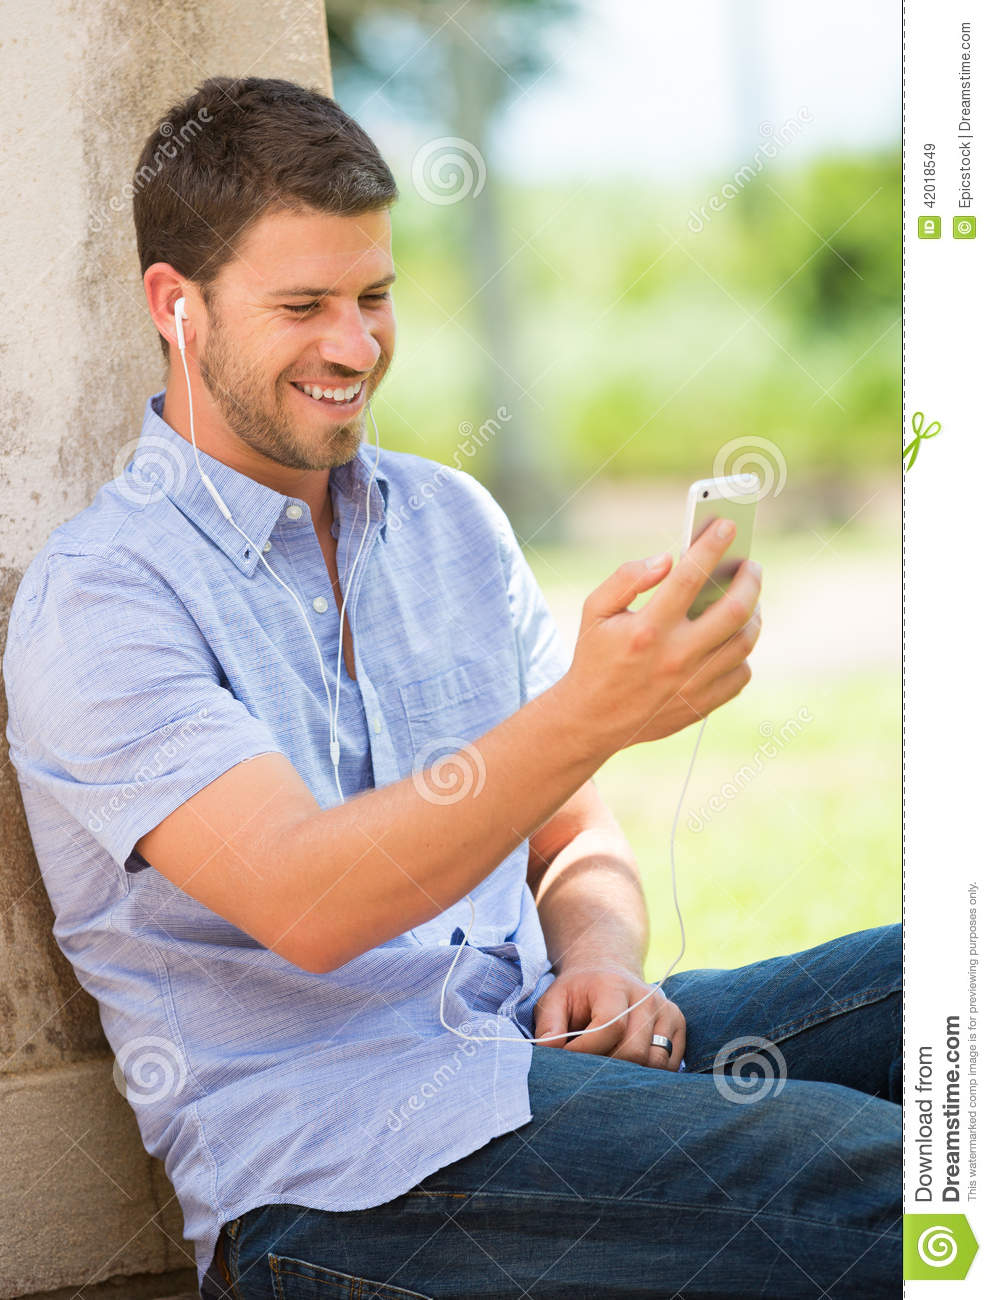 Man On Cell Phone : Young man using cell phone stock photo image